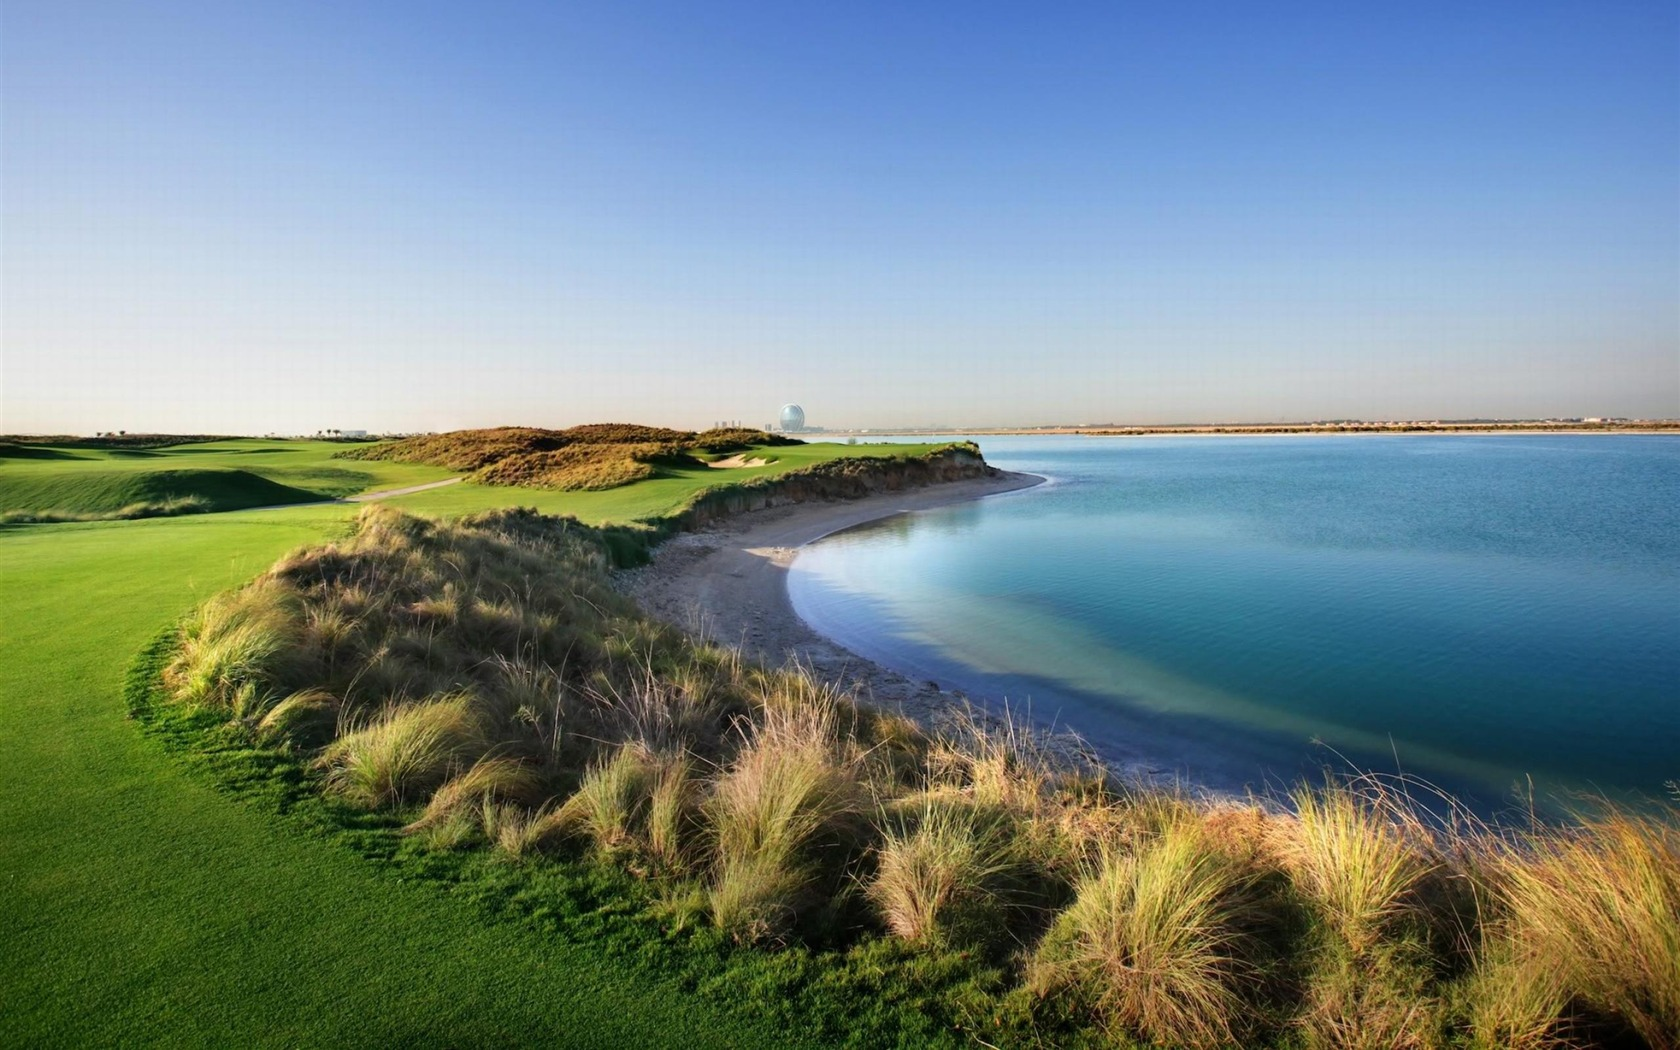 47 Golf Course Pictures Wallpaper 1680x1050 On Wallpapersafari